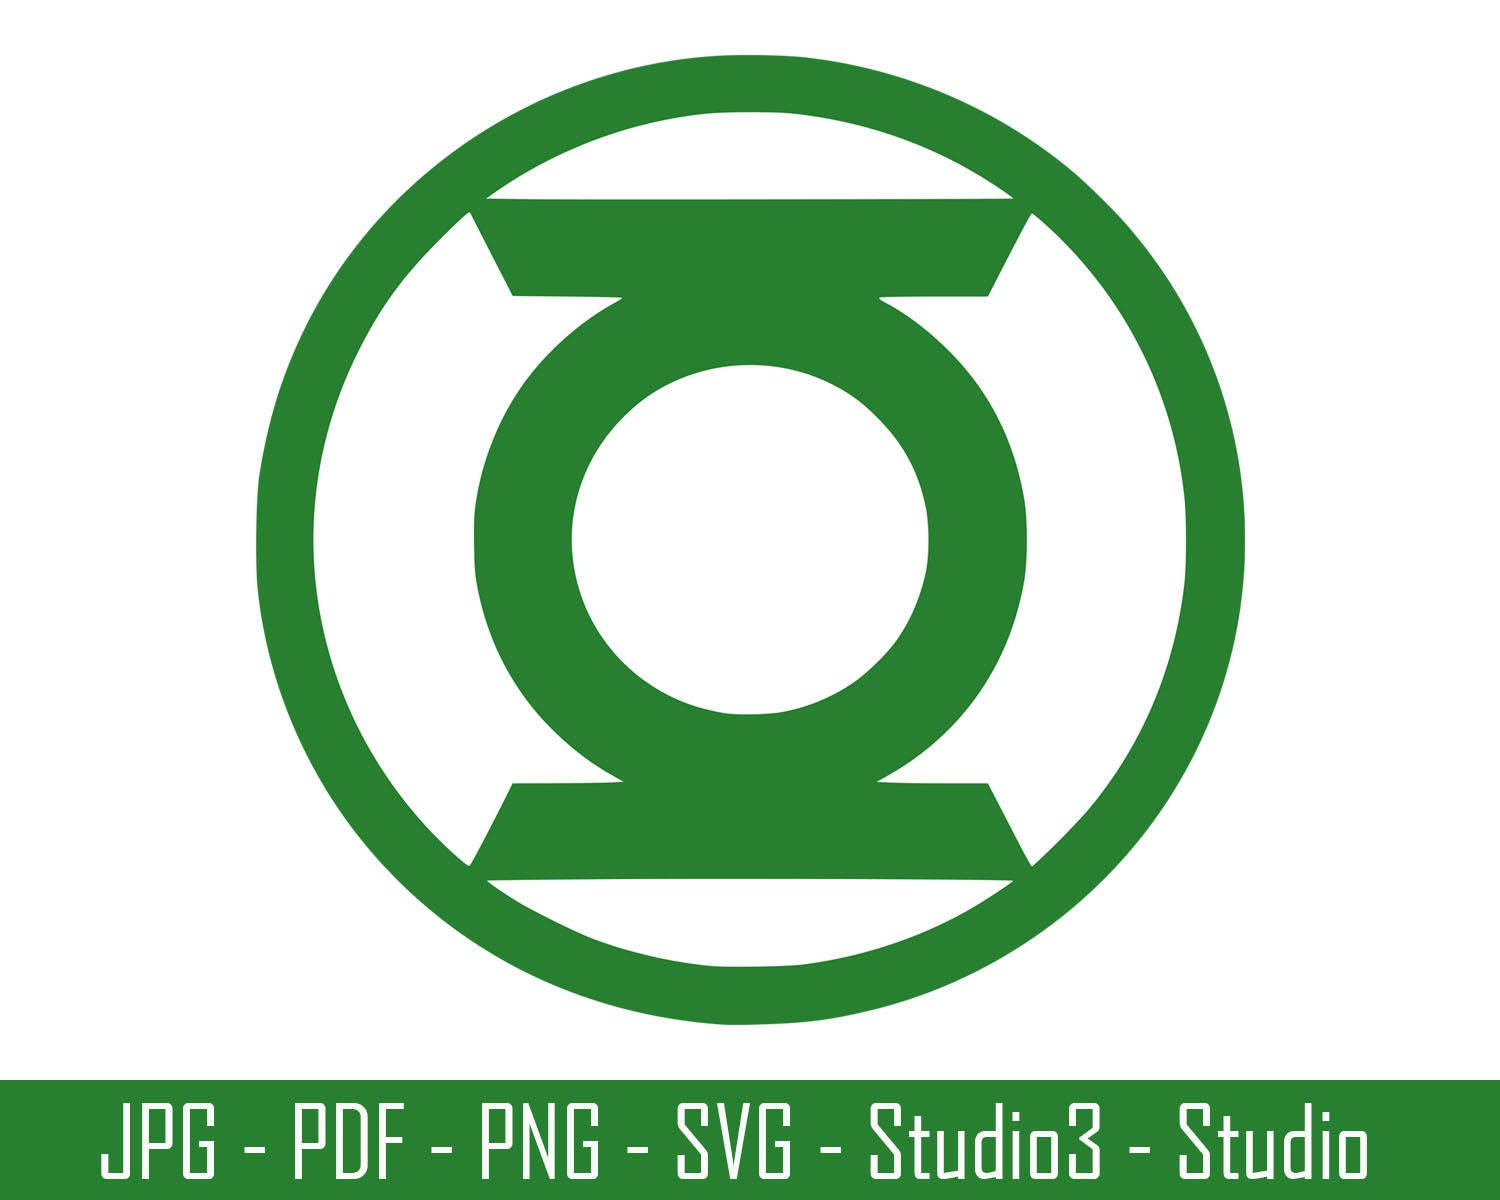 Green Lantern DC Comics Green Lantern Logo Superhero Cut